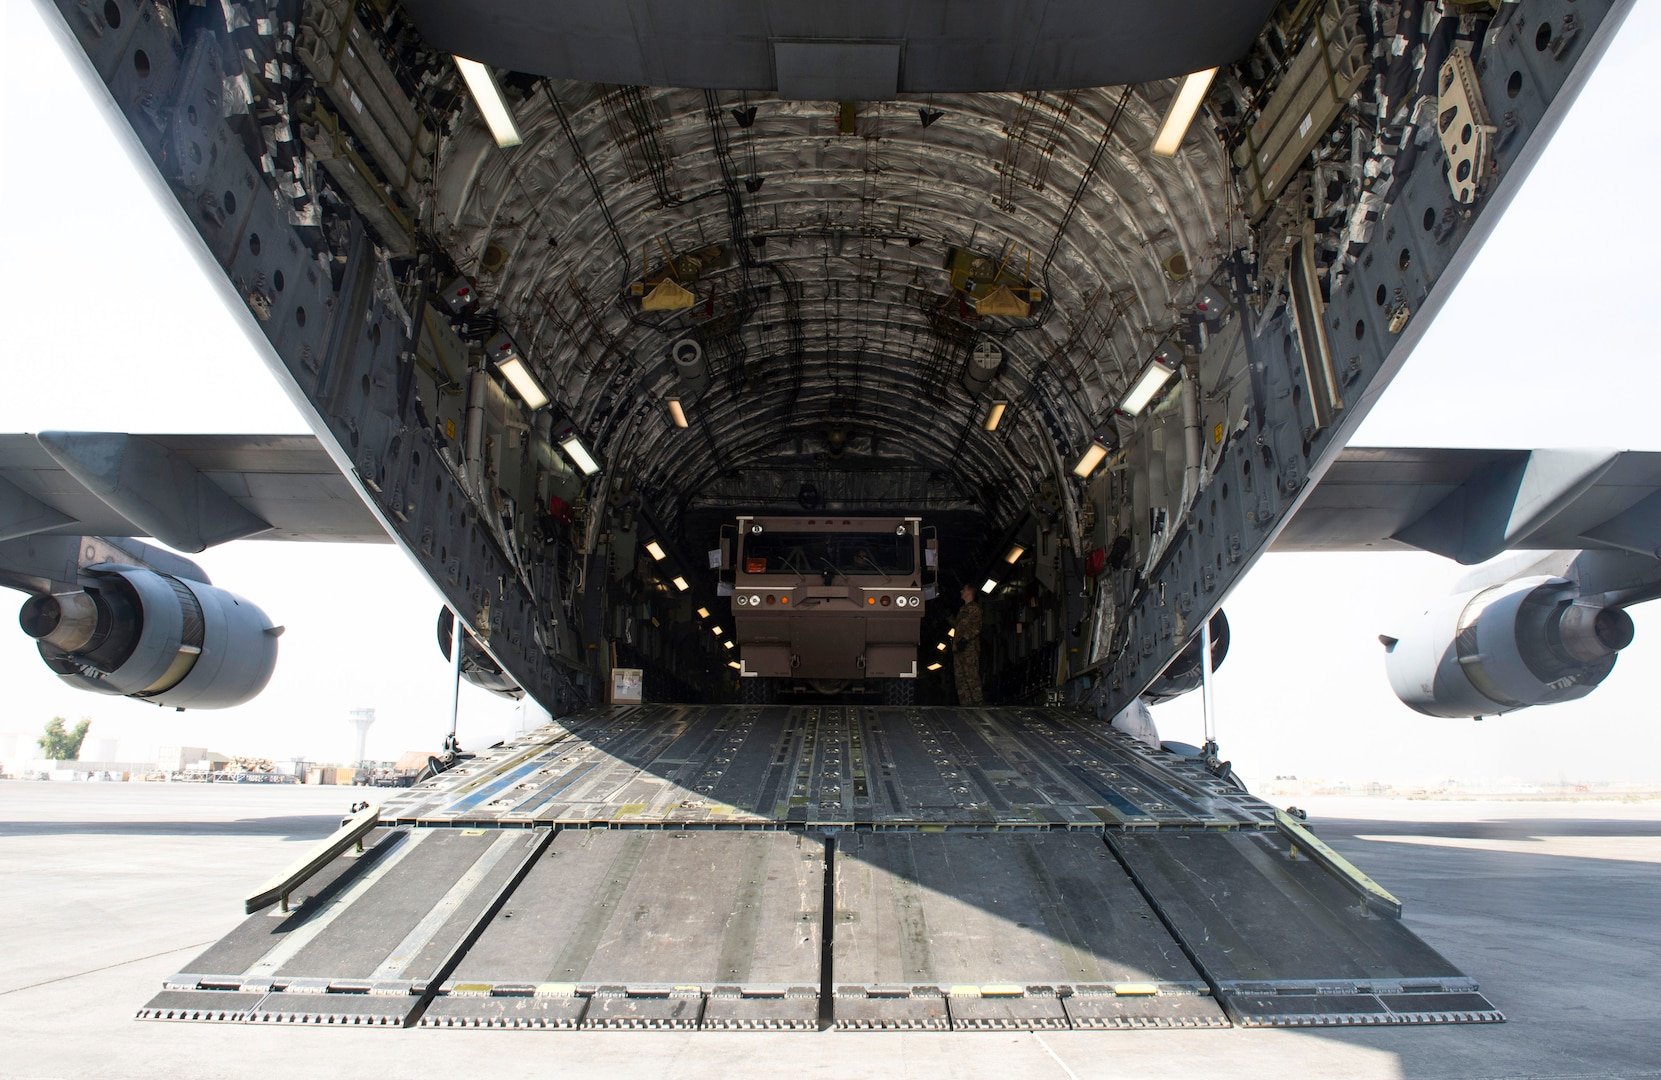 An 870th Air Expeditionary Advisory Squadron Airman drives a fire engine out of an 816th Expeditionary Airlift Squadron C-17 Globemaster III during a mission in support of Combined Joint Task Force - Operation Inherent Resolve Oct. 25, 2016. The 816th EAS delivered fire engines to Iraq. The squadrons are actively engaged in tactical airlift operations supporting the Mosul offensive. (U.S. Air Force photo by Staff Sgt. Matthew B. Fredericks)